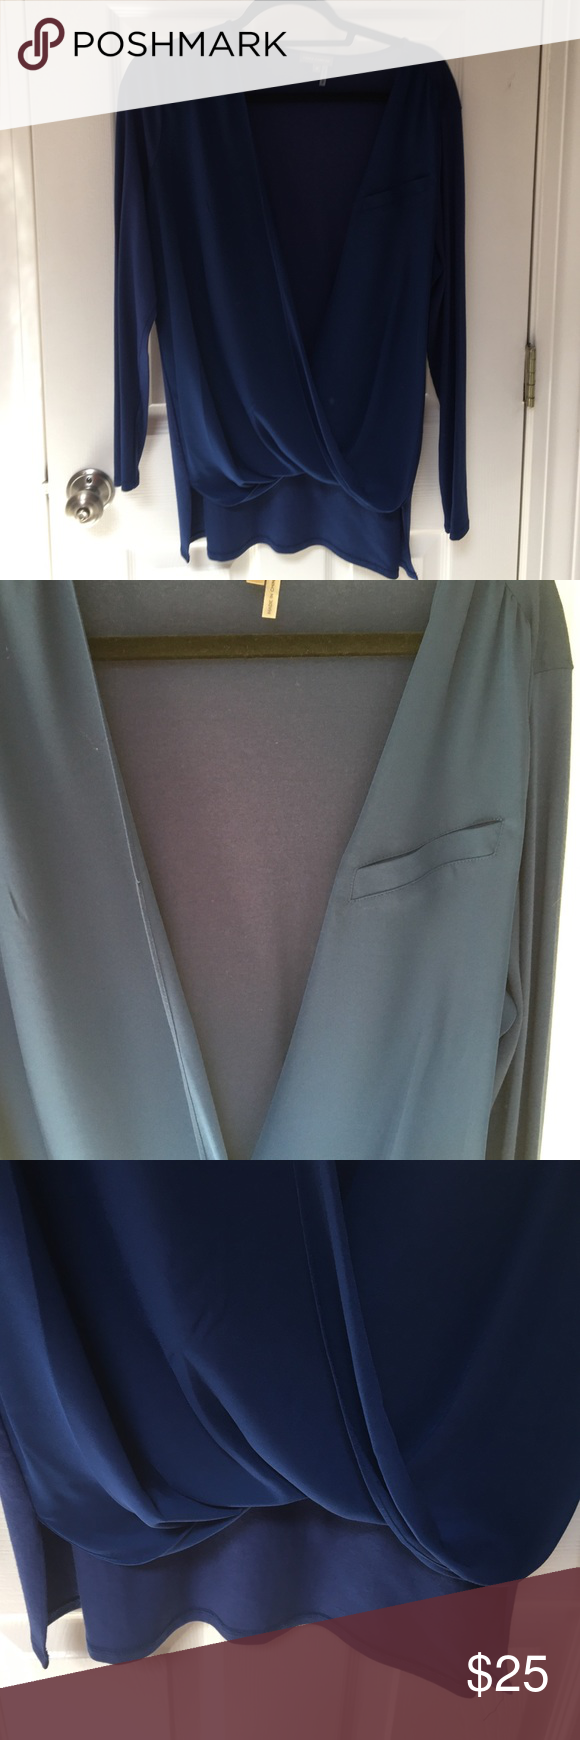 Vince Camuto Royal blue size M blouse Longer in back, shorter in front, front pocket. Front is 100% polyester, back is 96% rayon, 4% spandex Vince Camuto Tops Blouses